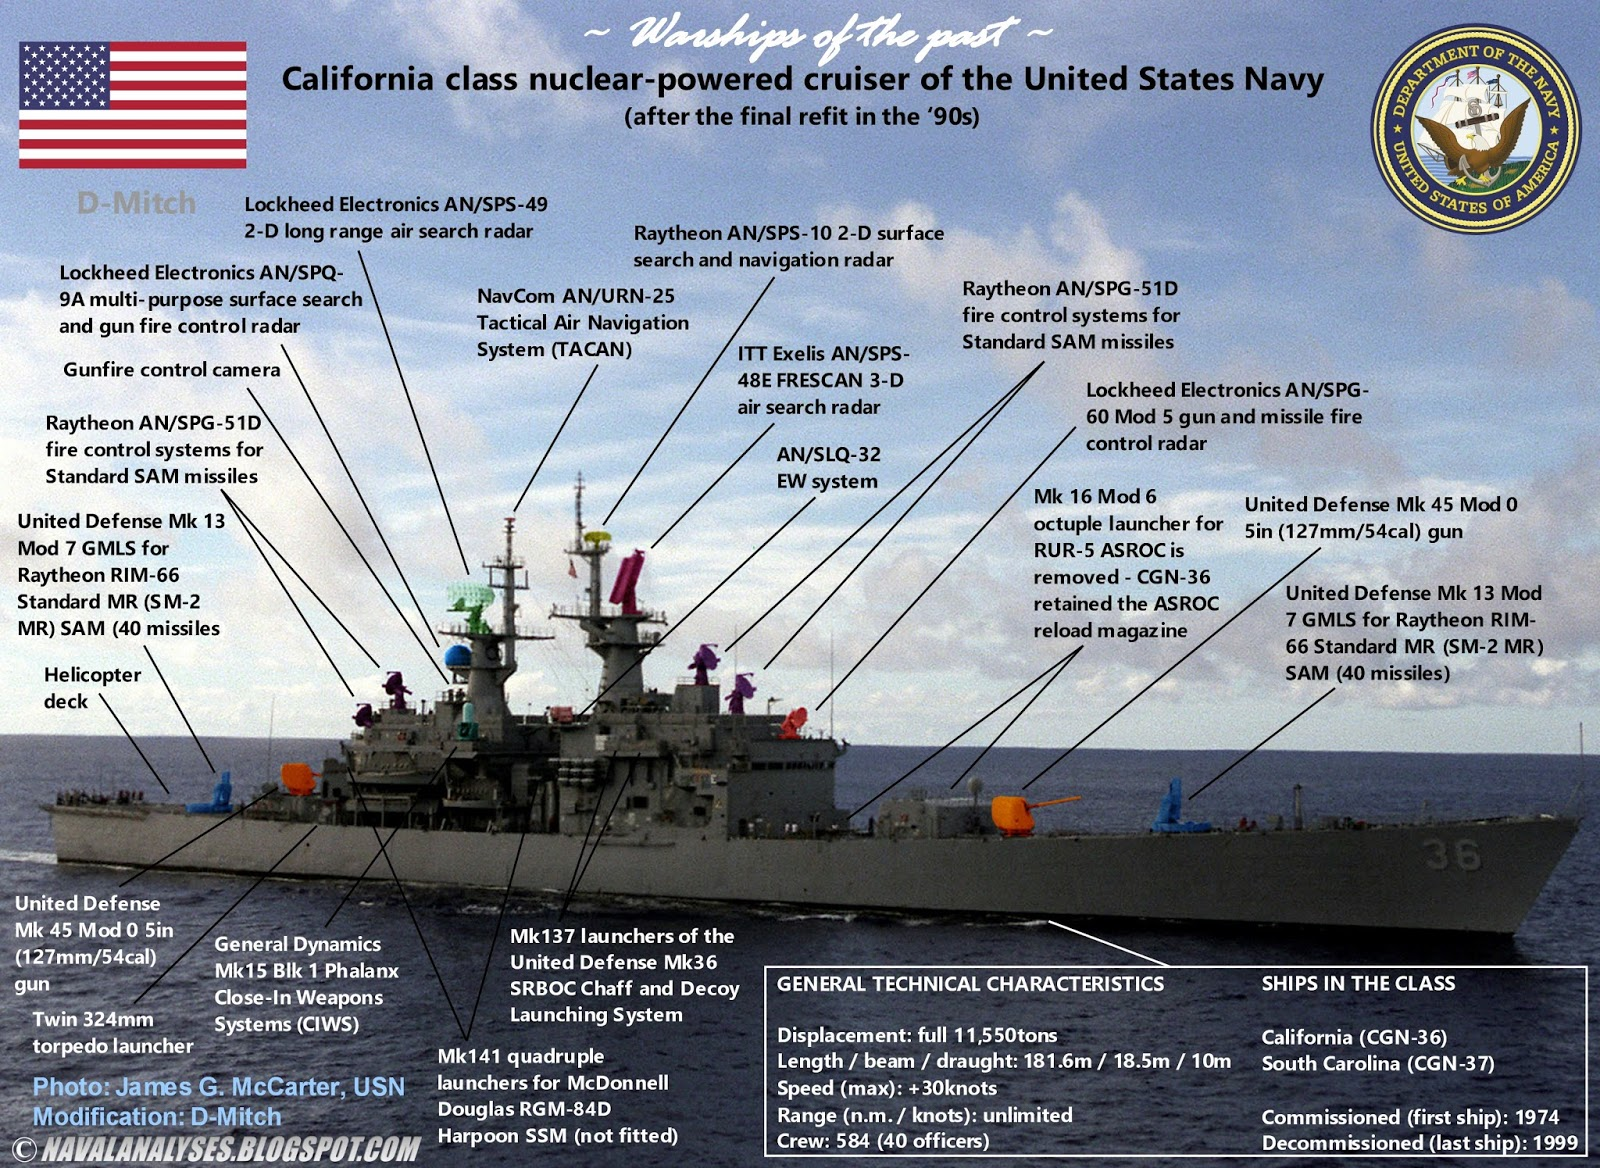 Naval Analyses: WARSHIPS OF THE PAST: California class